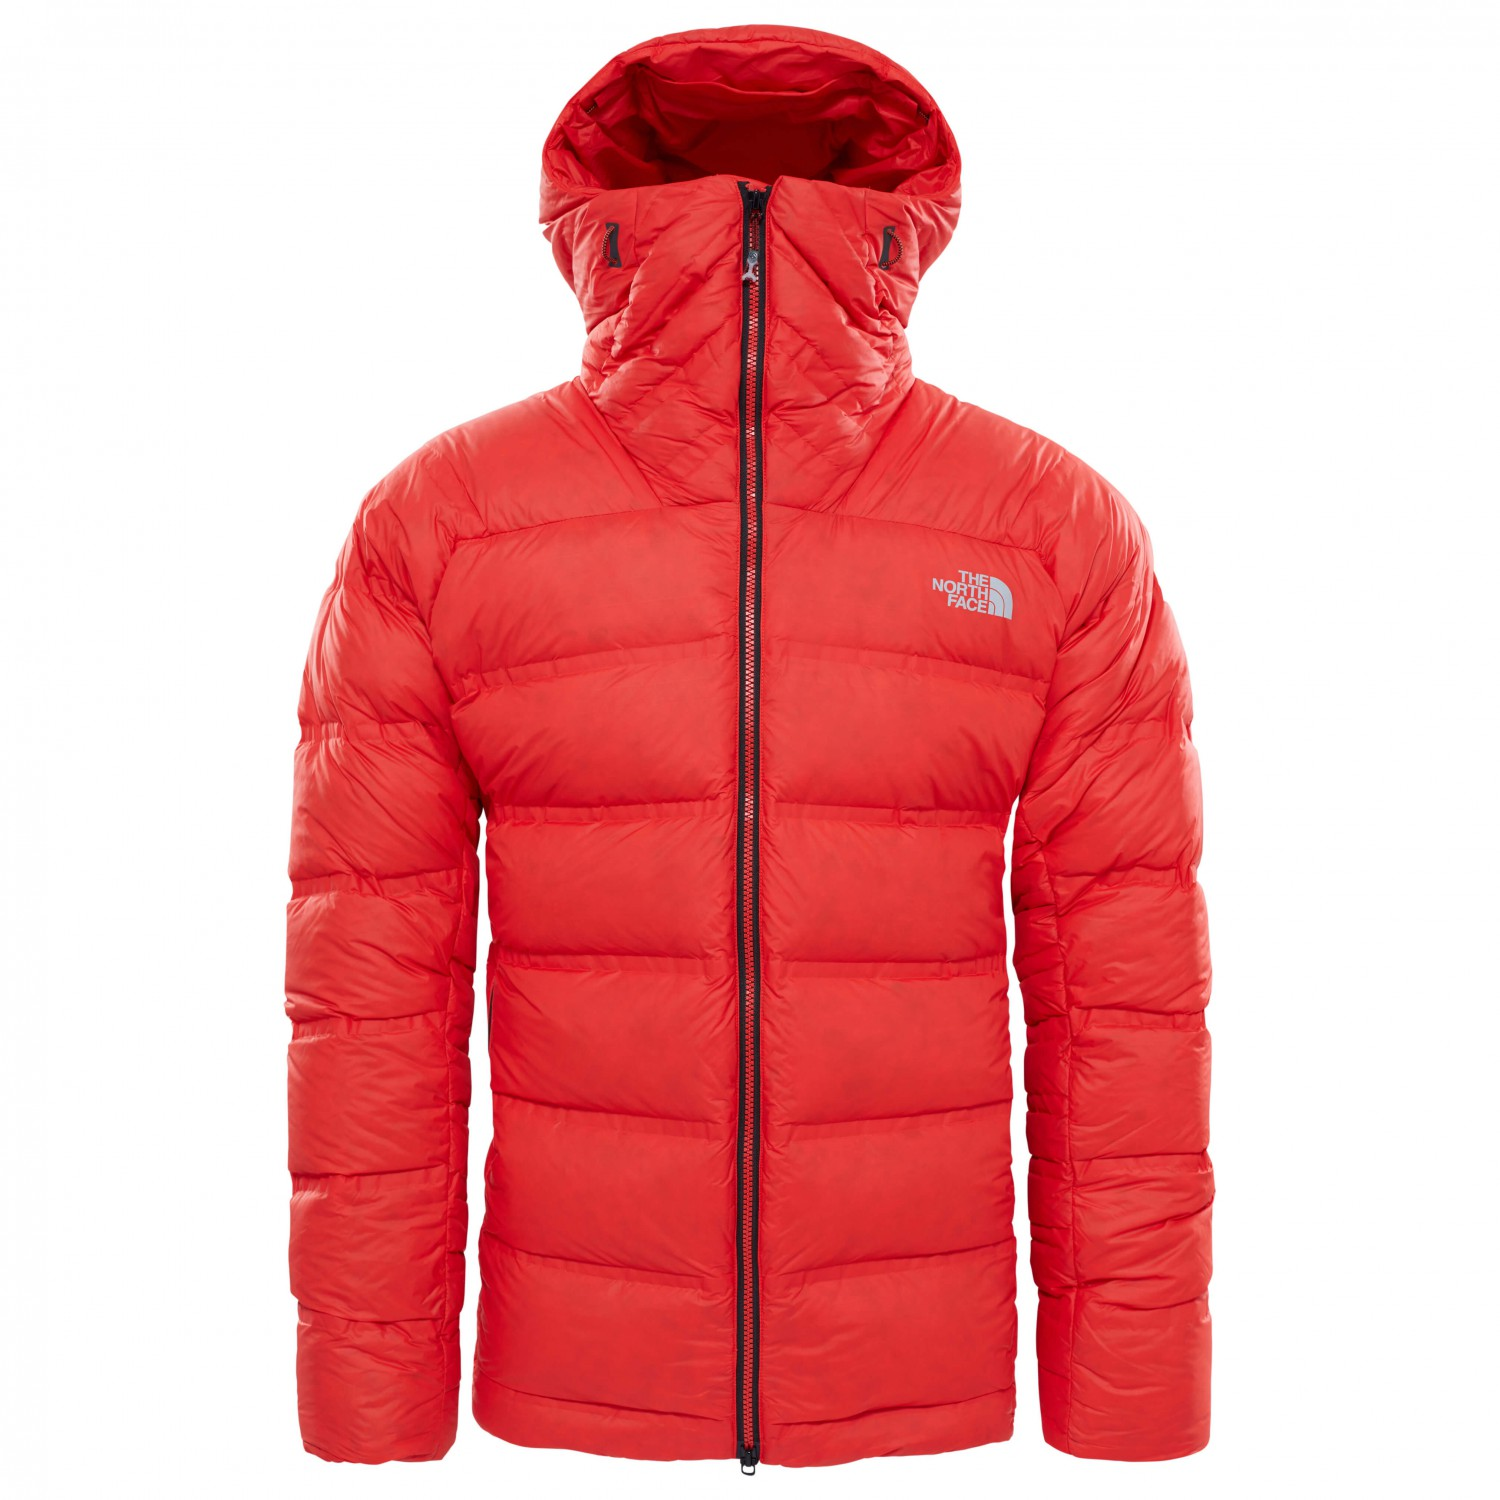 North Parka Acquista Uomo Summit The L6 Online Down Face Belay 7YqWSd f245a927d31